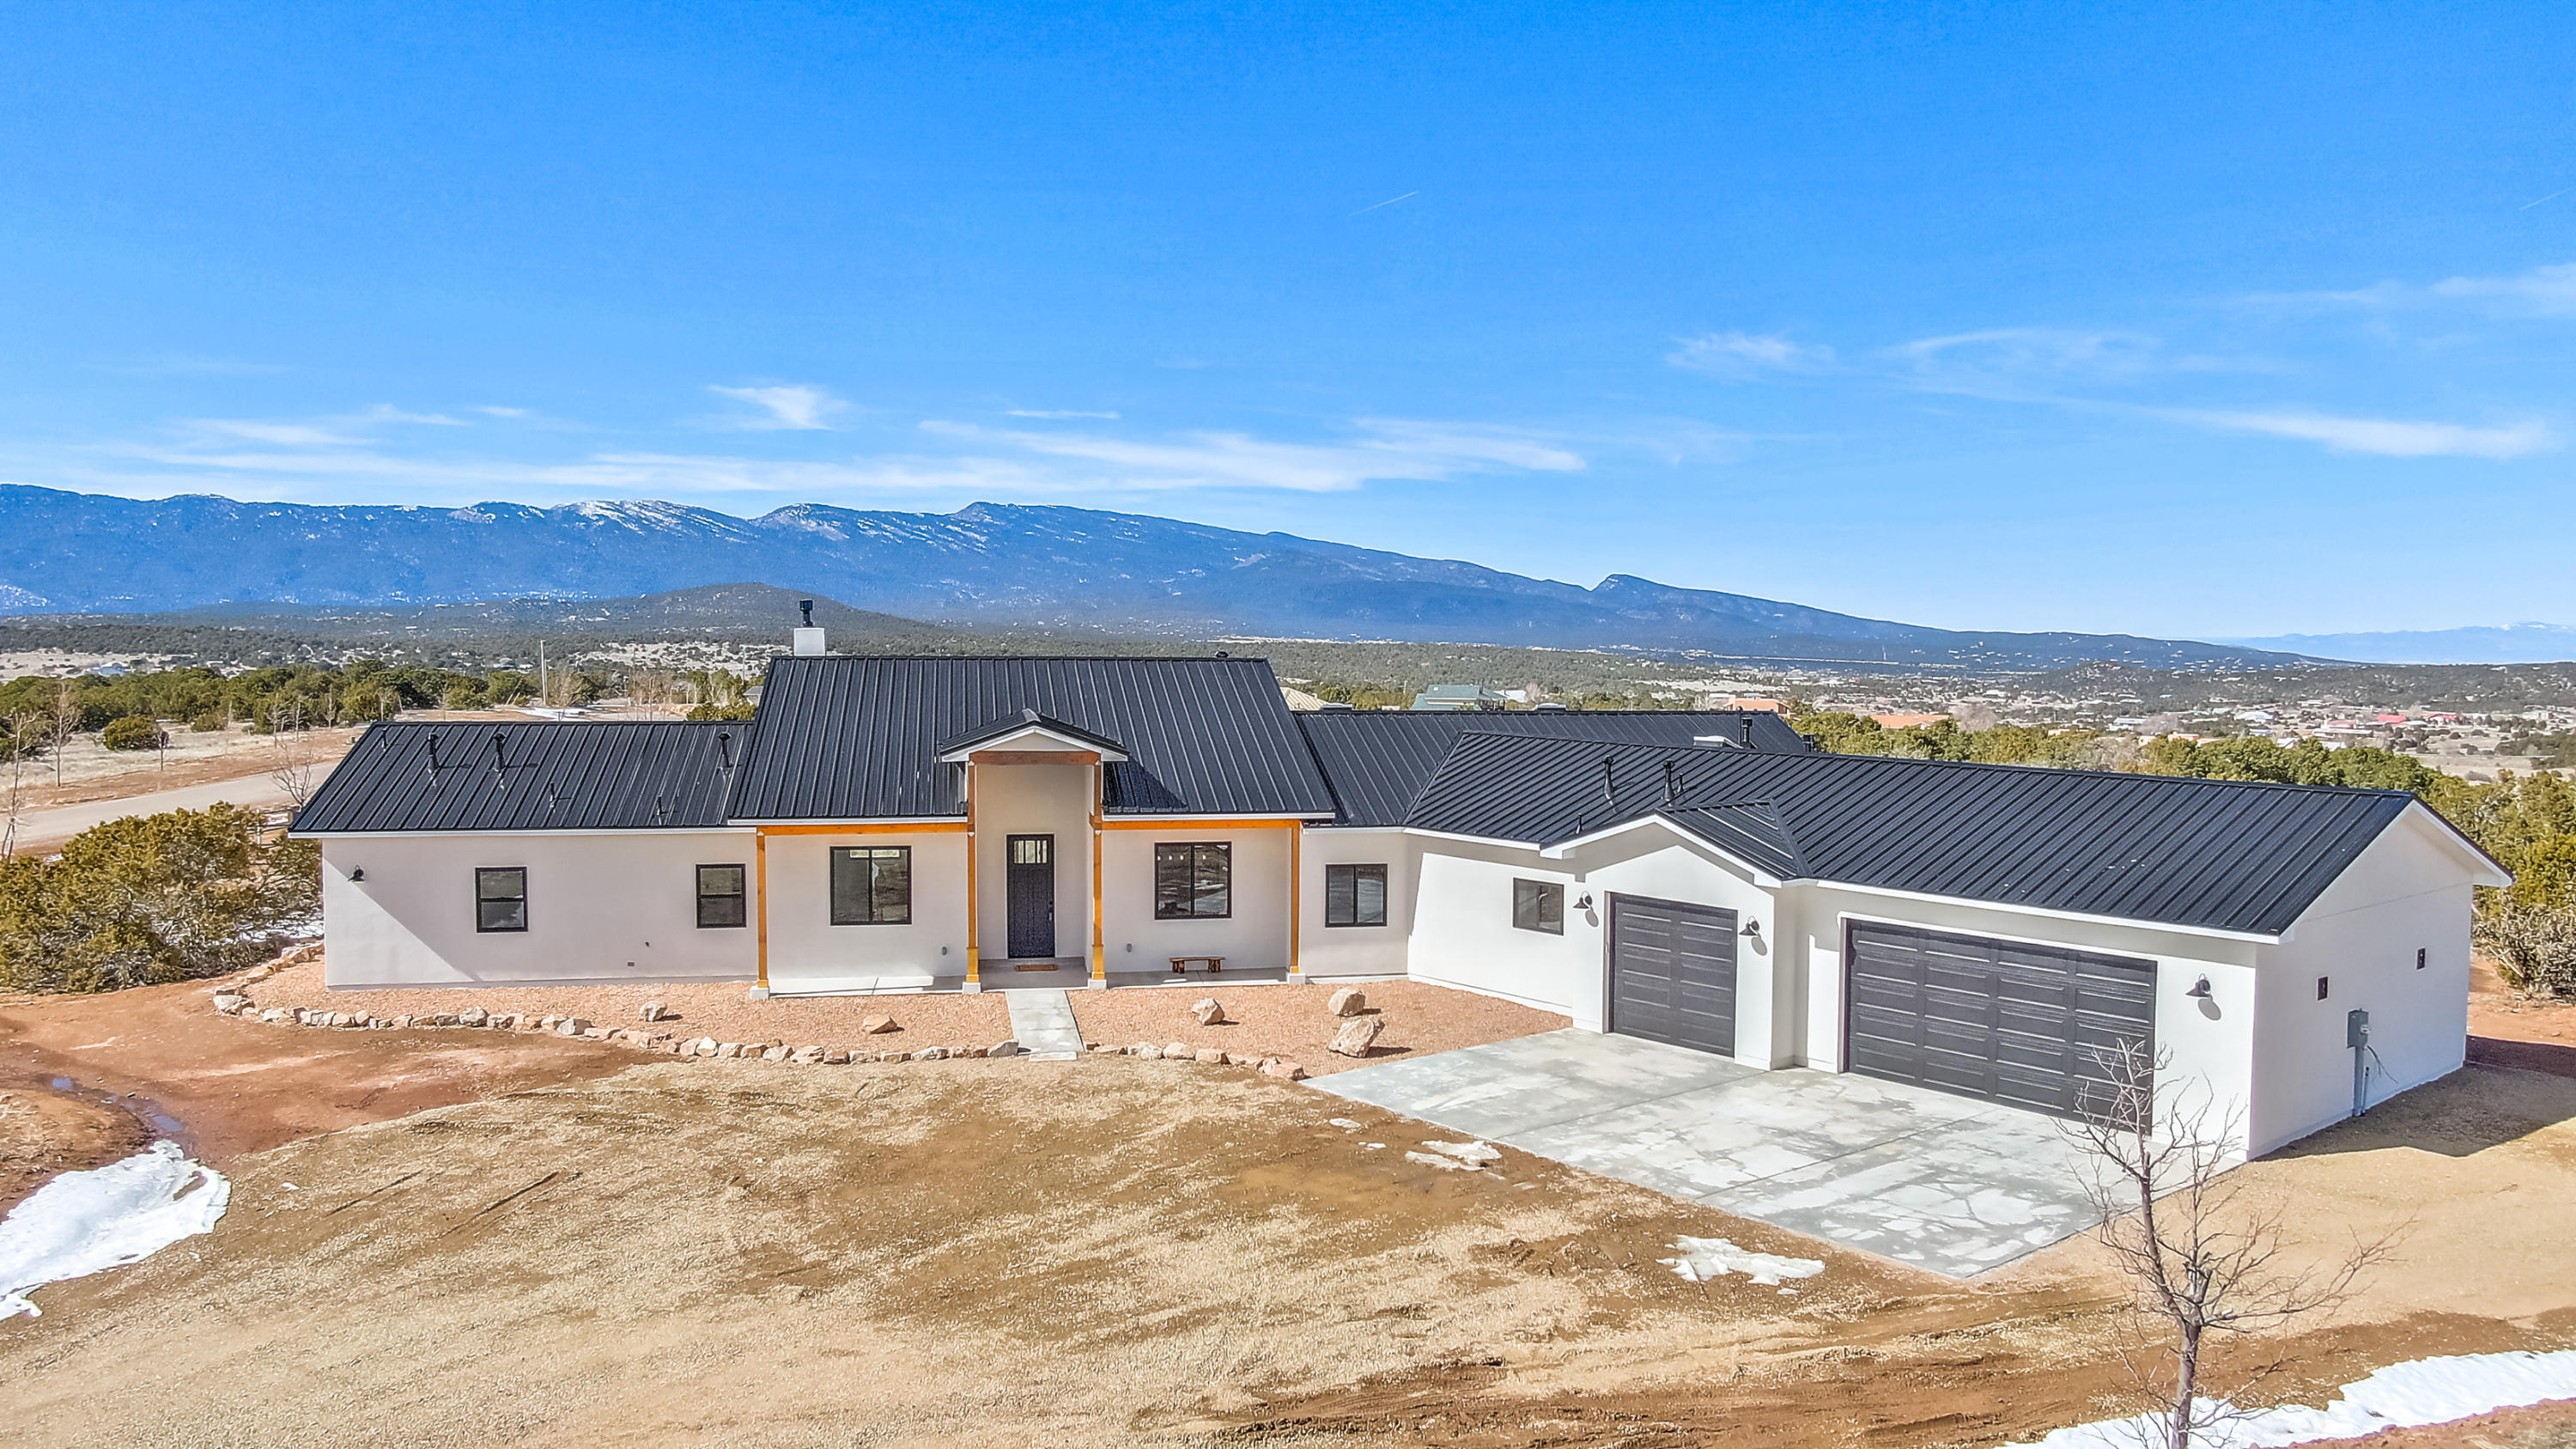 This brand new farmhouse style home is mountain living at it's finest! The panoramic mountain views are stunning along with all of the high end finishes.  There are 4 bd, 3 bth, an office, and a theatre room.  You'll enjoy the open concept with 10' ceilings, 8' solid core doors, and 9' bedroom ceilings.  The kitchen boasts stainless steel appliances, soft close cabinets, quartz counter tops, marble backsplash, pot filler, island, and walk in butler pantry.  The master has great views, coffered ceilings with accent lighting, double sinks, garden tub, walk in shower, and huge closet.  The theatre is equipped with a screen, projector, and pre-wired for speakers.  Oversized epoxy garage, tankless water heater, water softener, owned propane, great back patio and more. See feature list attached.